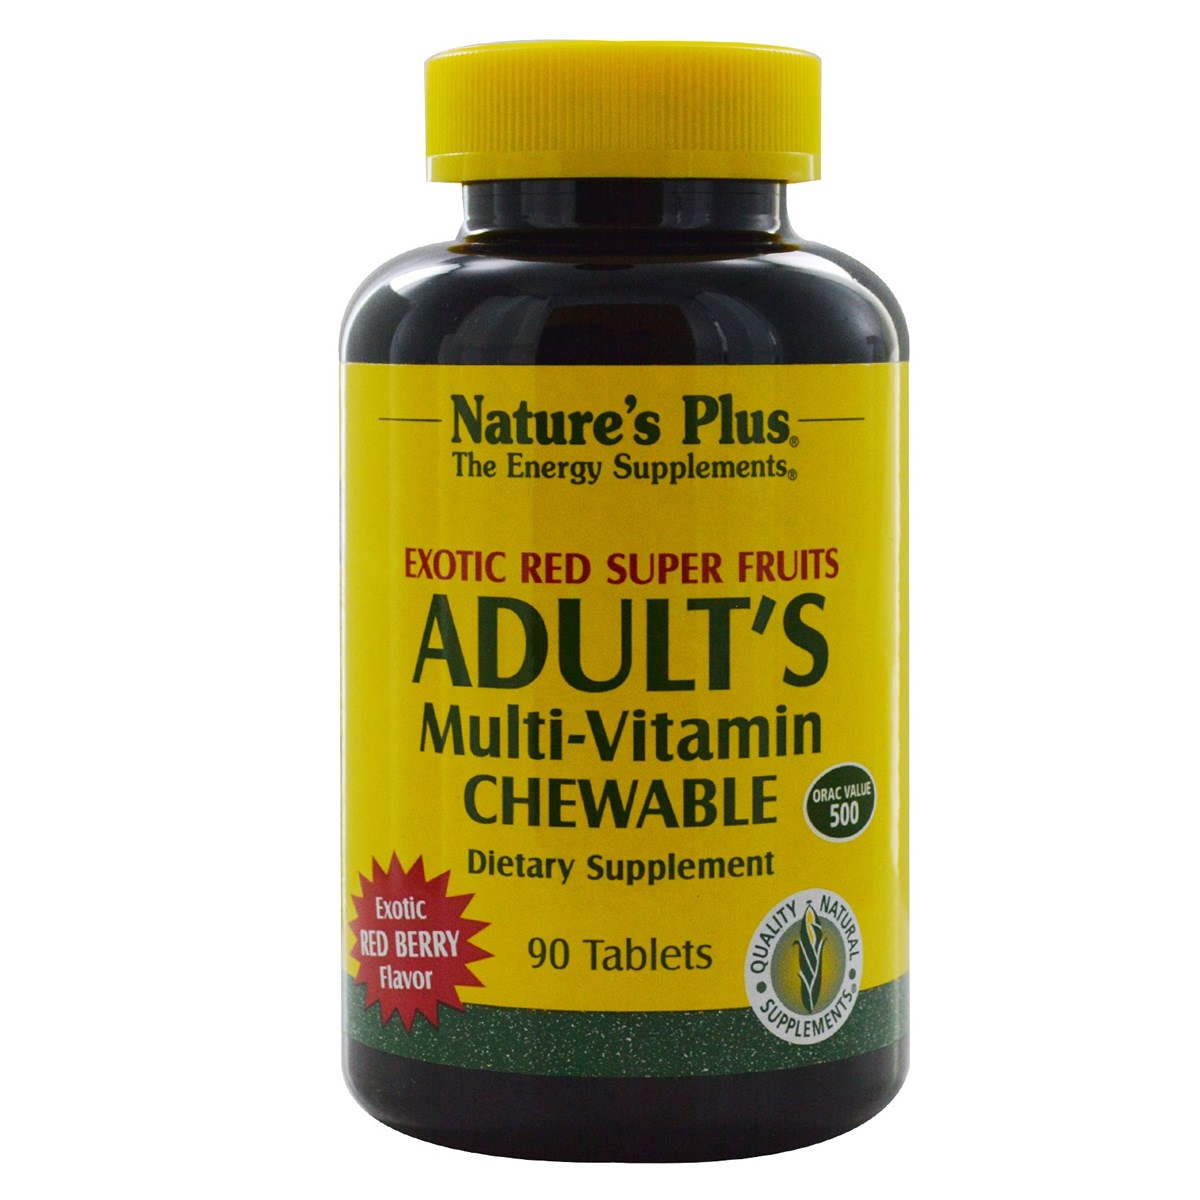 Natures Plus Adult's Multi-Vitamin Chewable Exotic Red Super Fruits